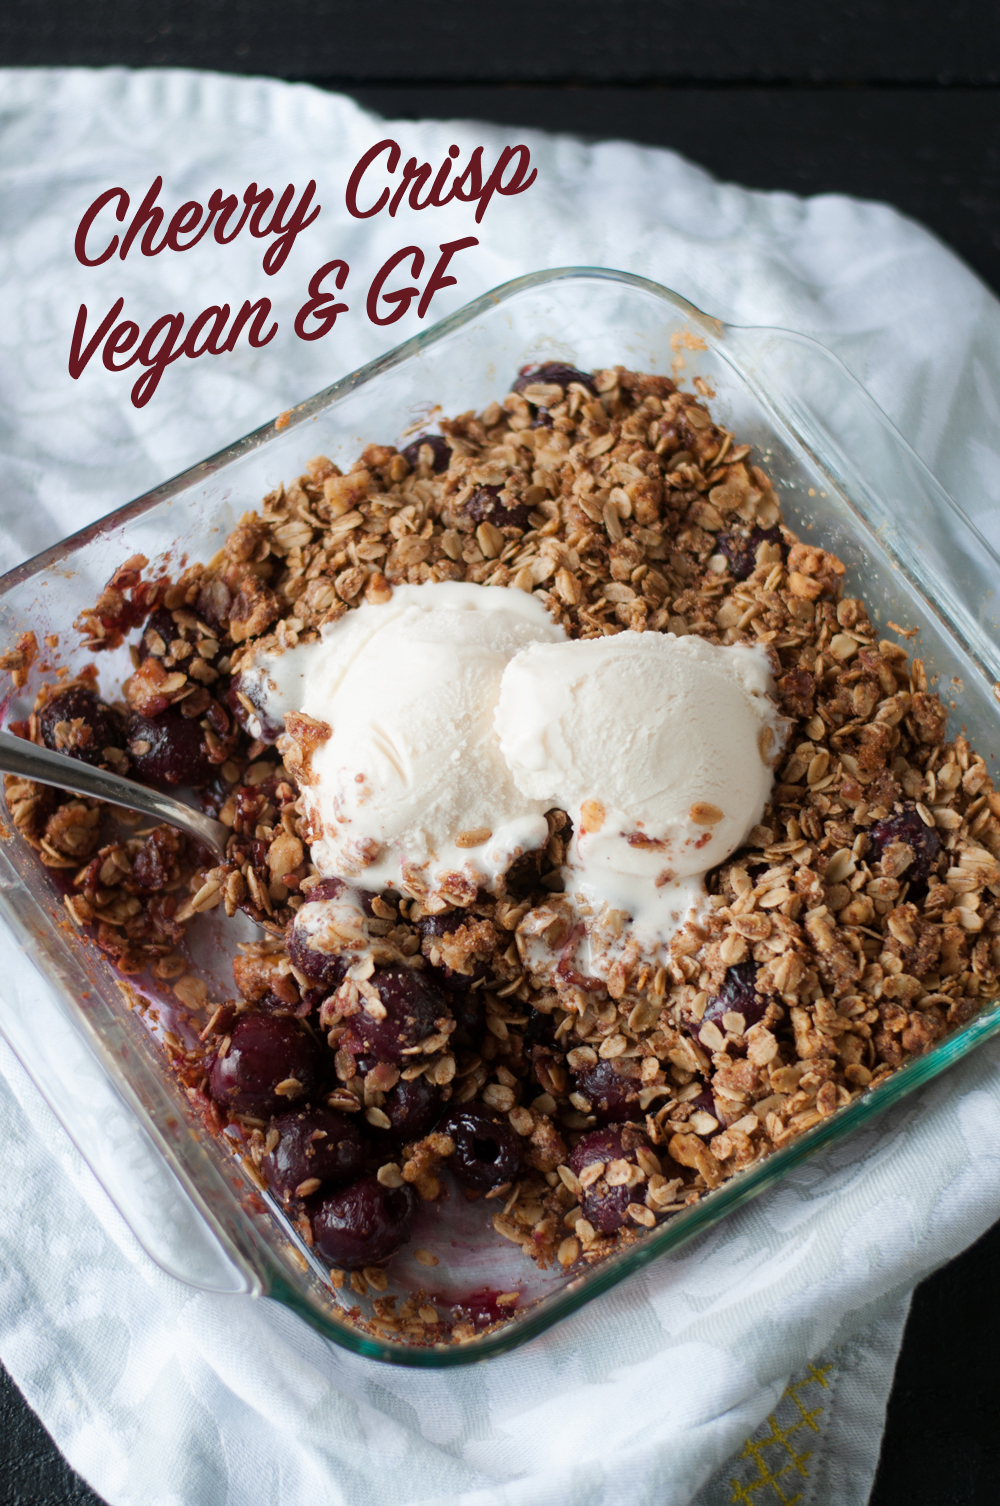 Cherry Crisp is an easy summer dessert featuring sweet cherries. Plus it's naturally gluten-free!